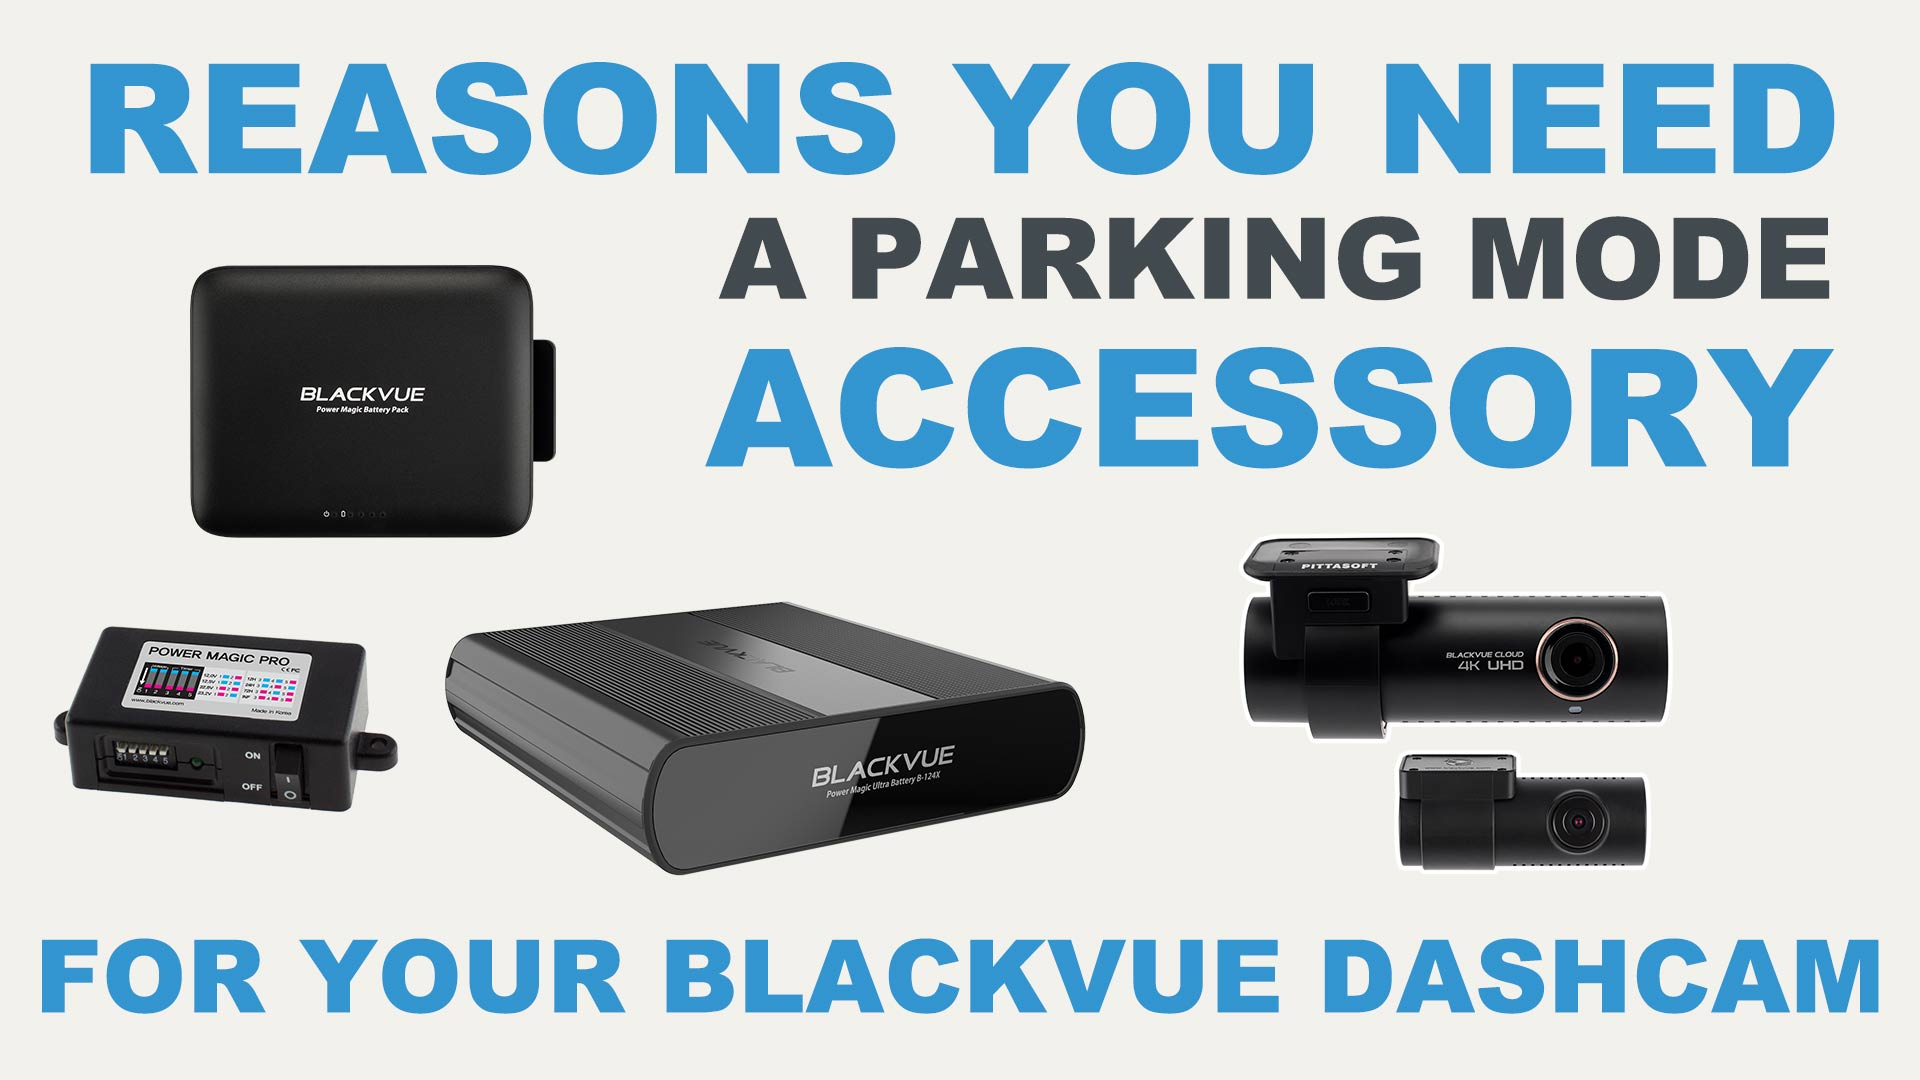 Reasons You Need a Parking Mode Accessory for your BlackVue Dashcam